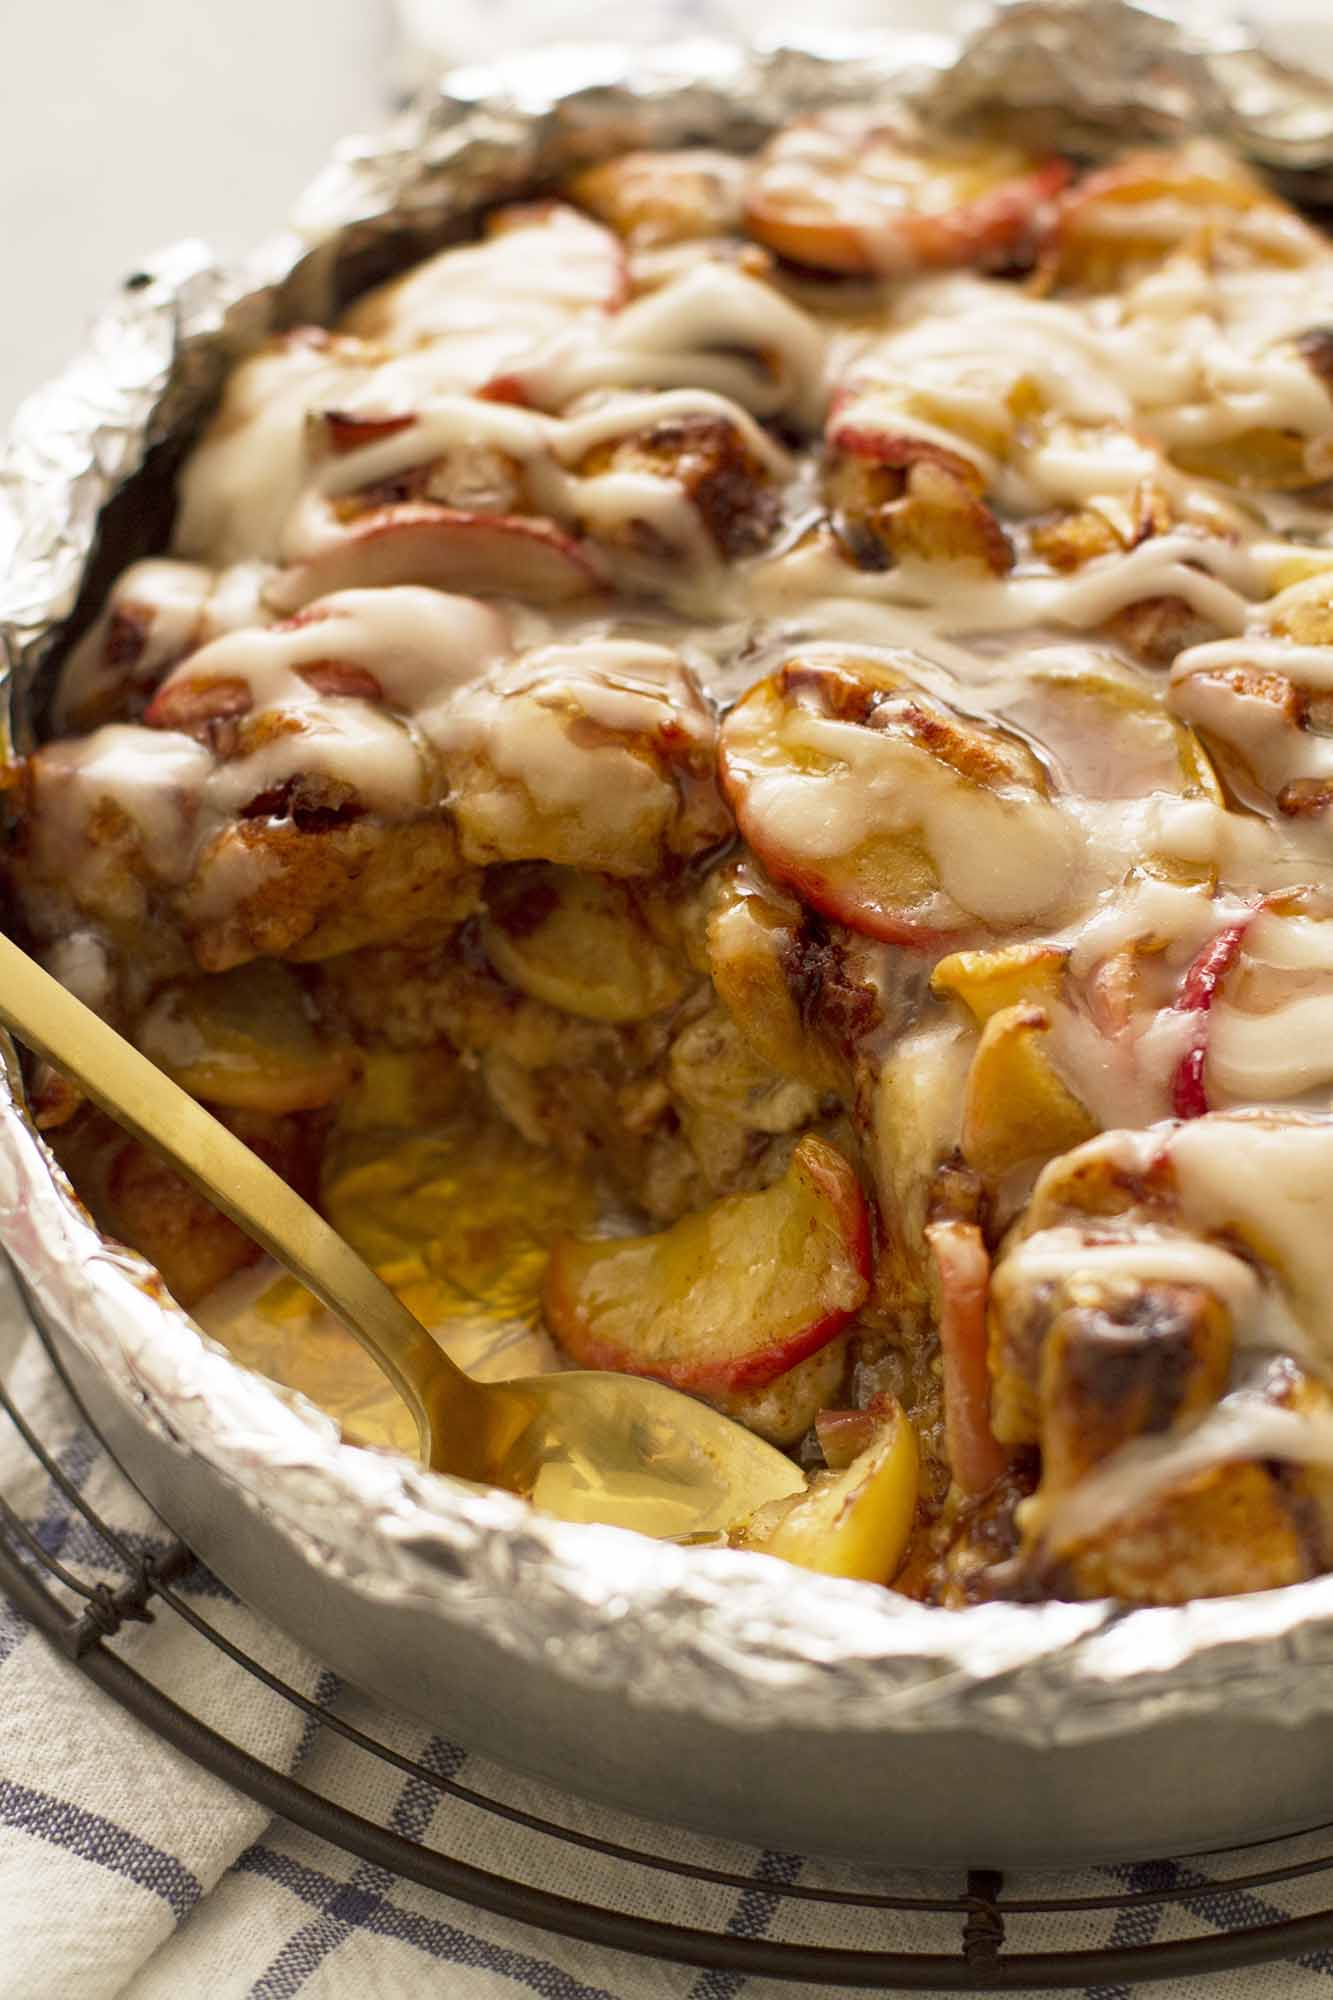 Caramel Apple Cinnamon Roll Breakfast Bread Pudding | girlversusdough.com @girlversusdough